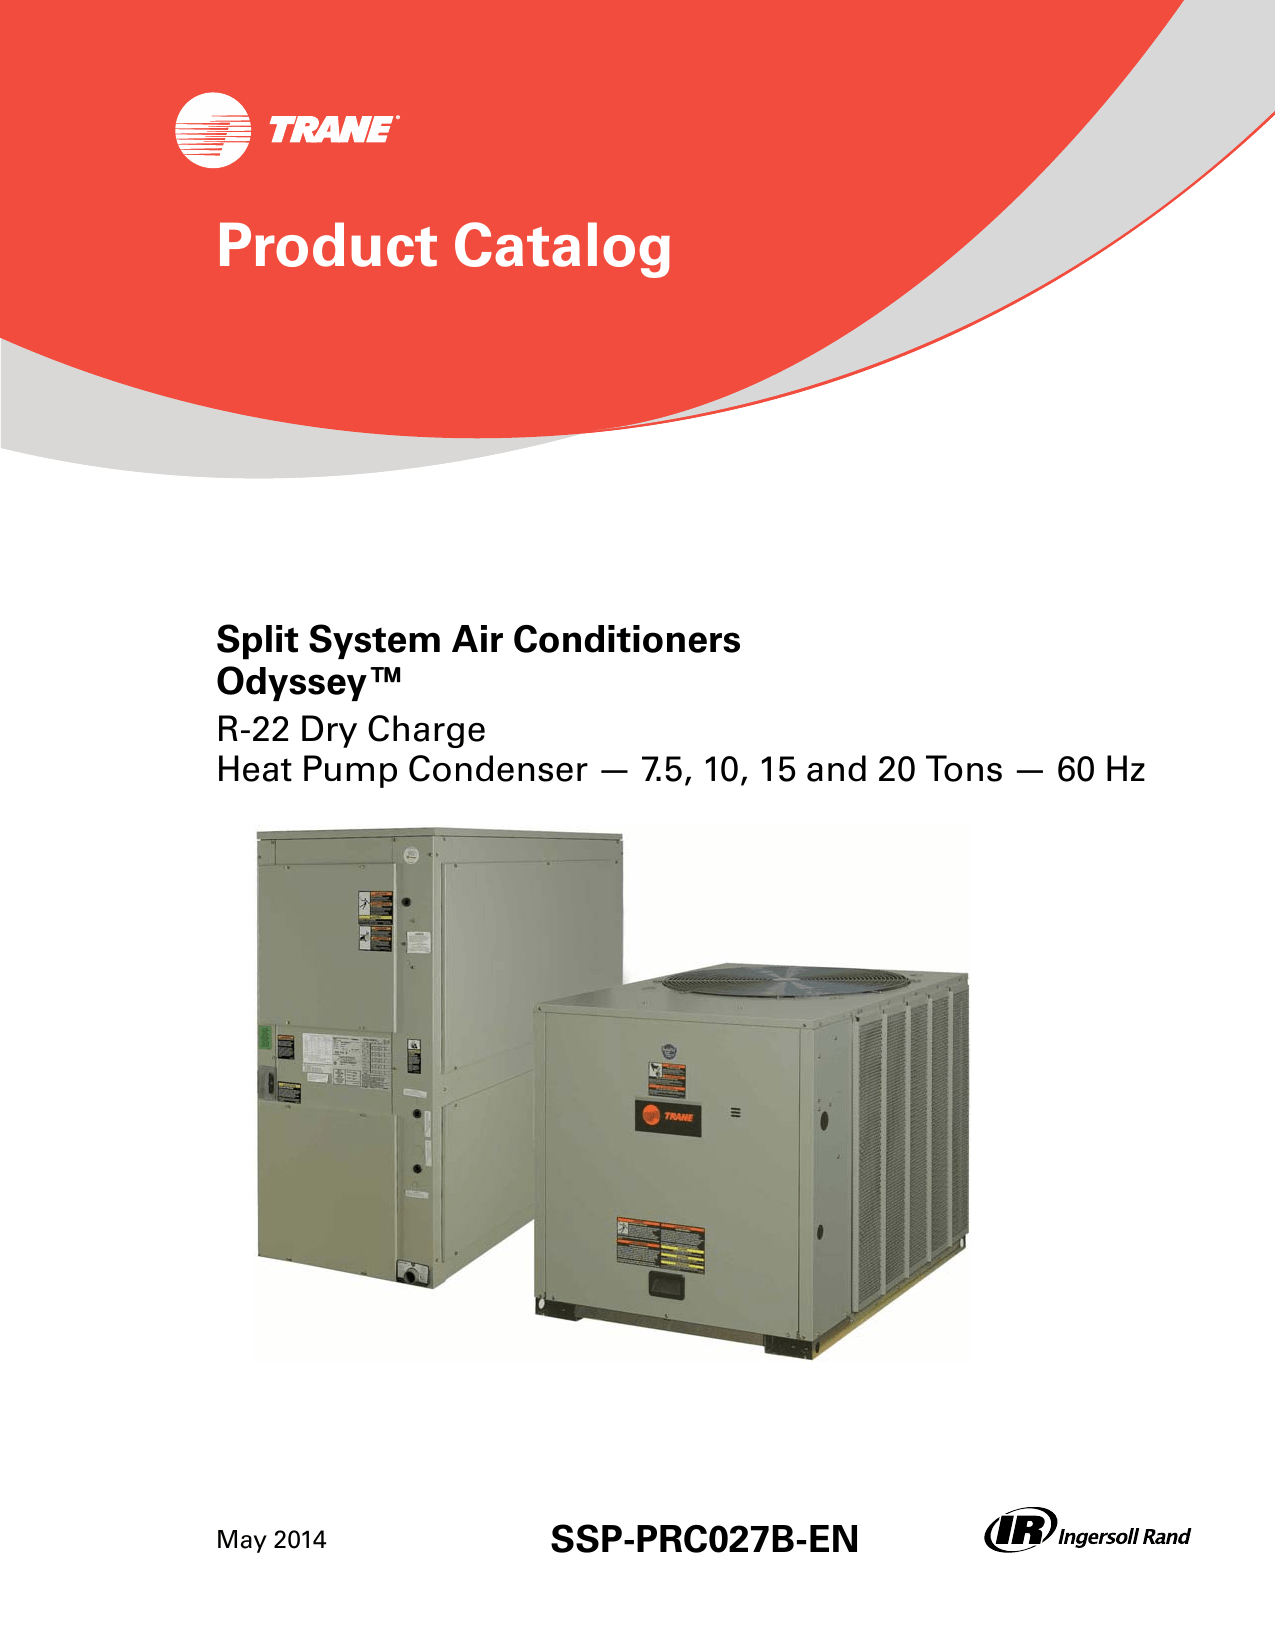 hight resolution of  wiring schematic tw on heating and air conditioning trane commercial hvac on trane odyssey 6 to 25 tons catalogue r 22 dry charge product catalog on